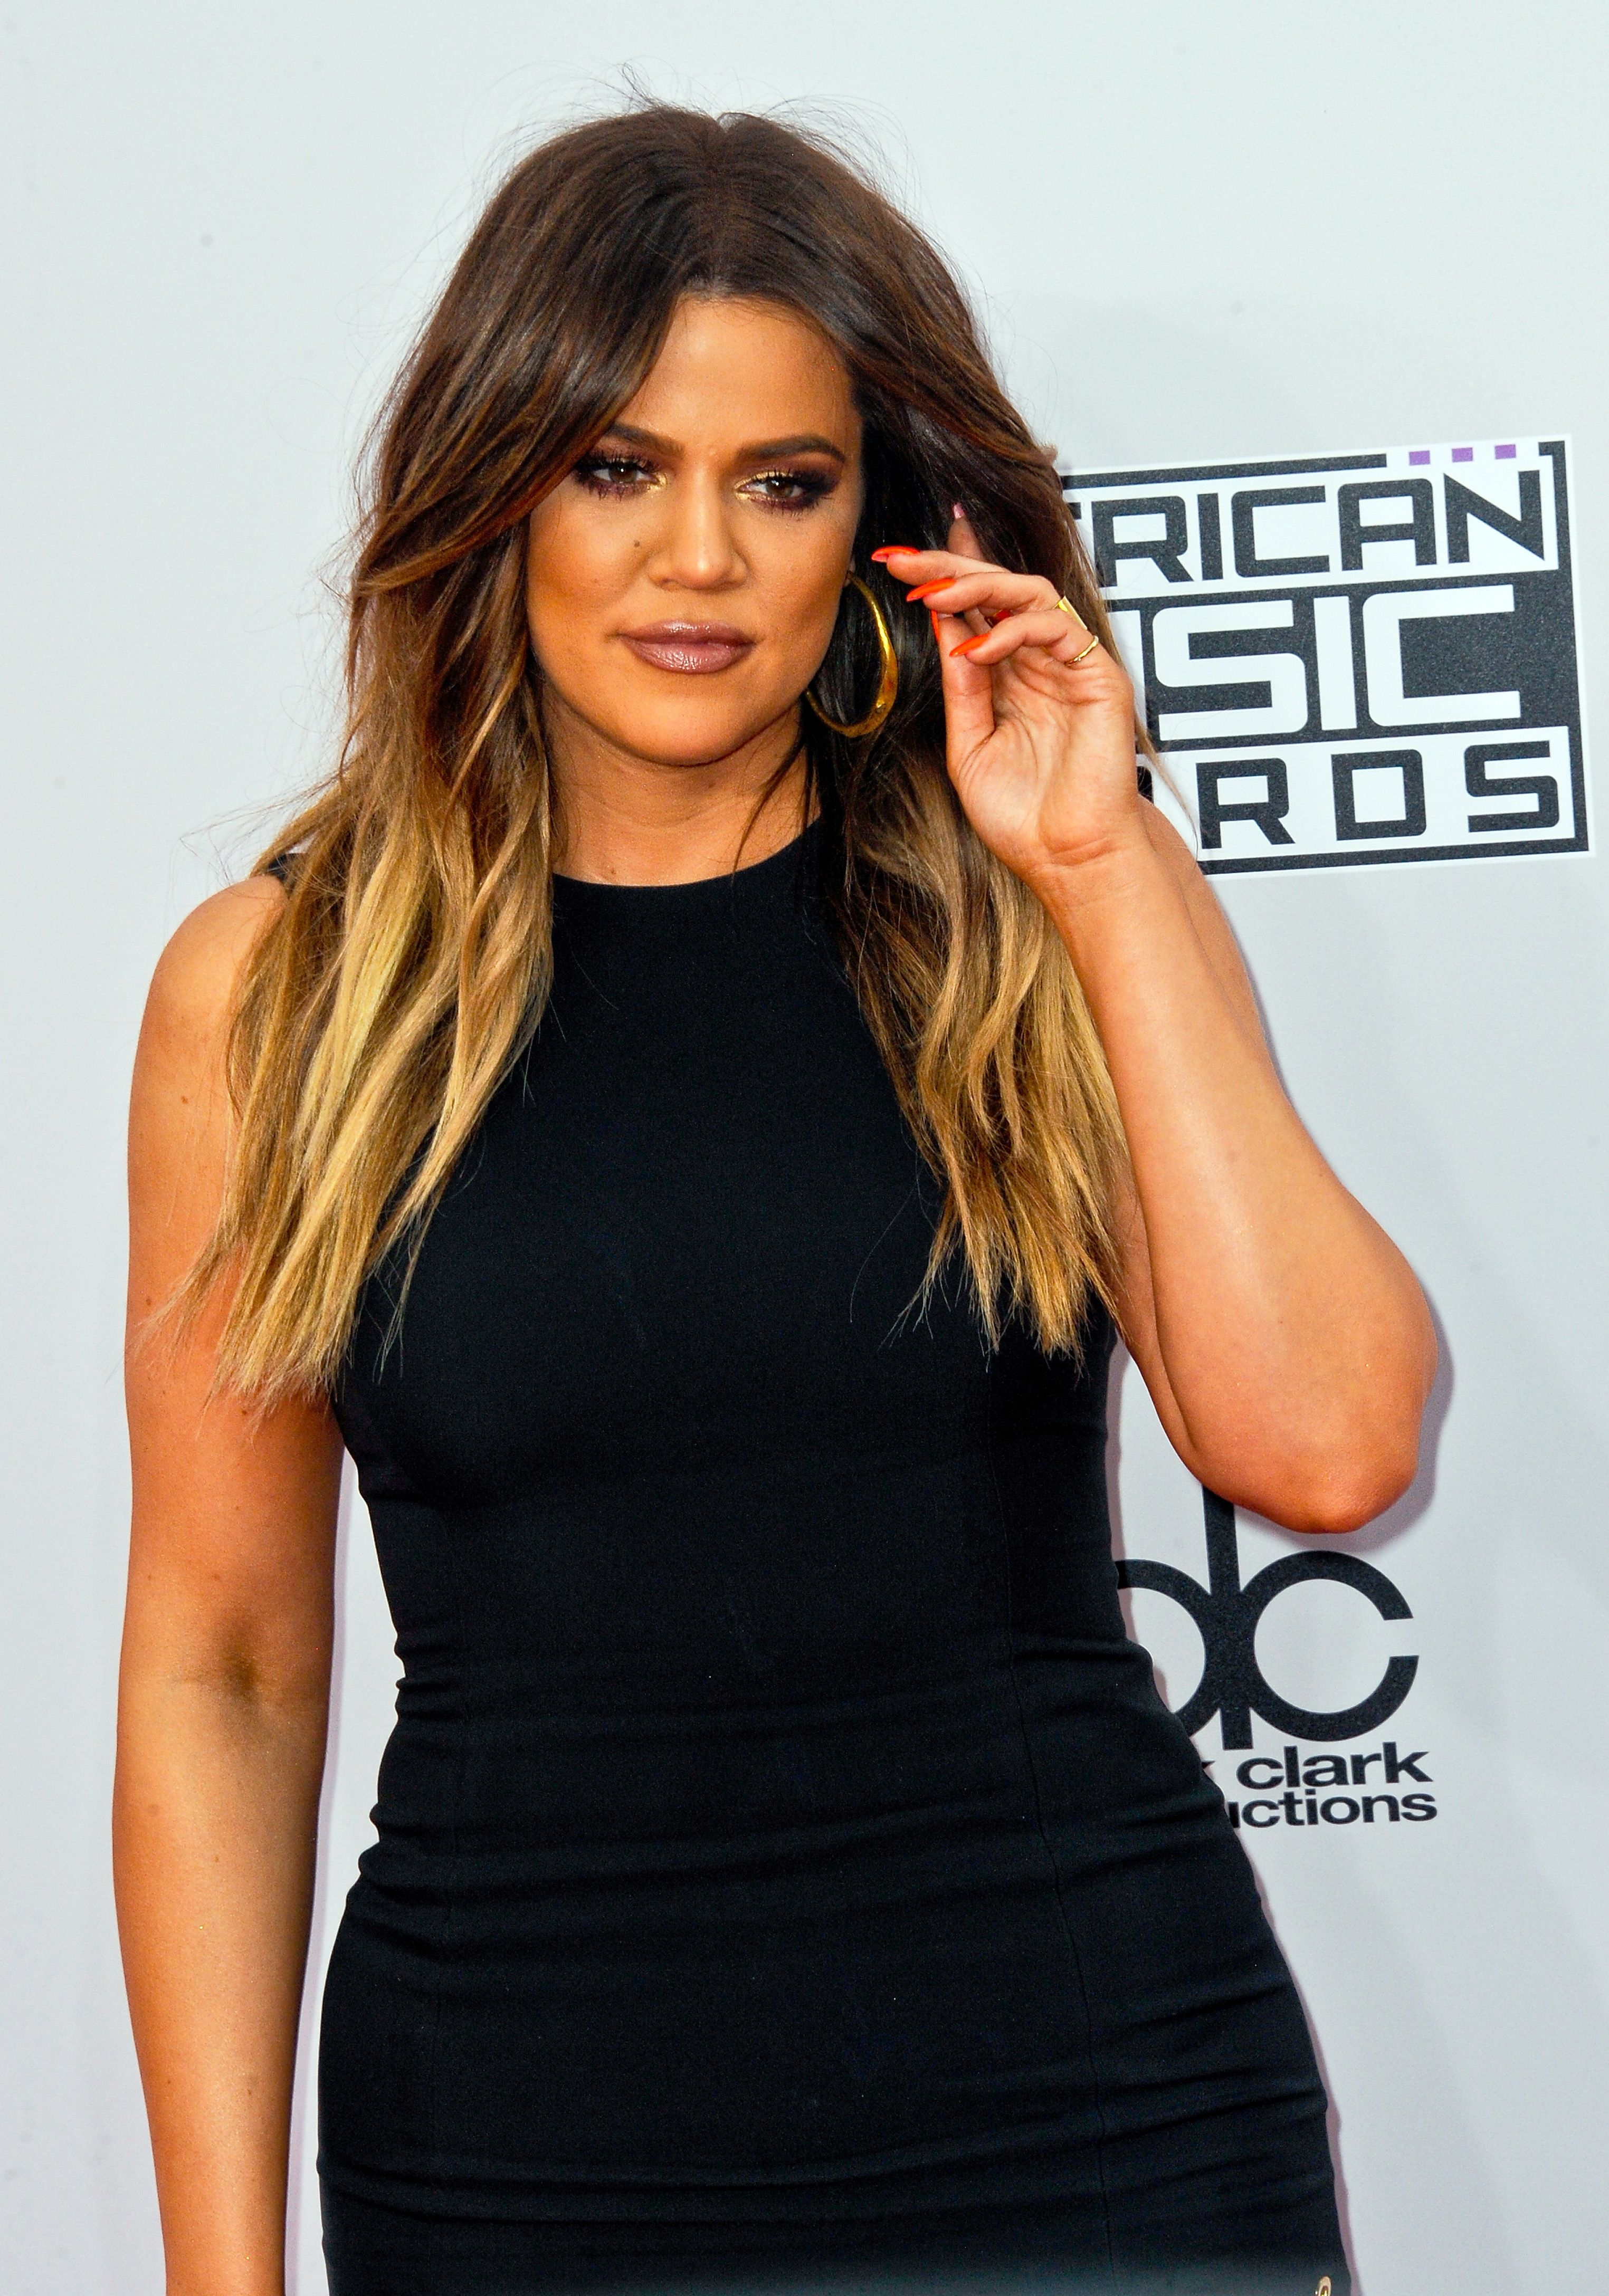 Khloé Kardashian during the 42nd Annual American Music Awards held at Nokia Theatre L.A. Live on November 23, 2014 in Los Angeles, California. | Source: Getty Images